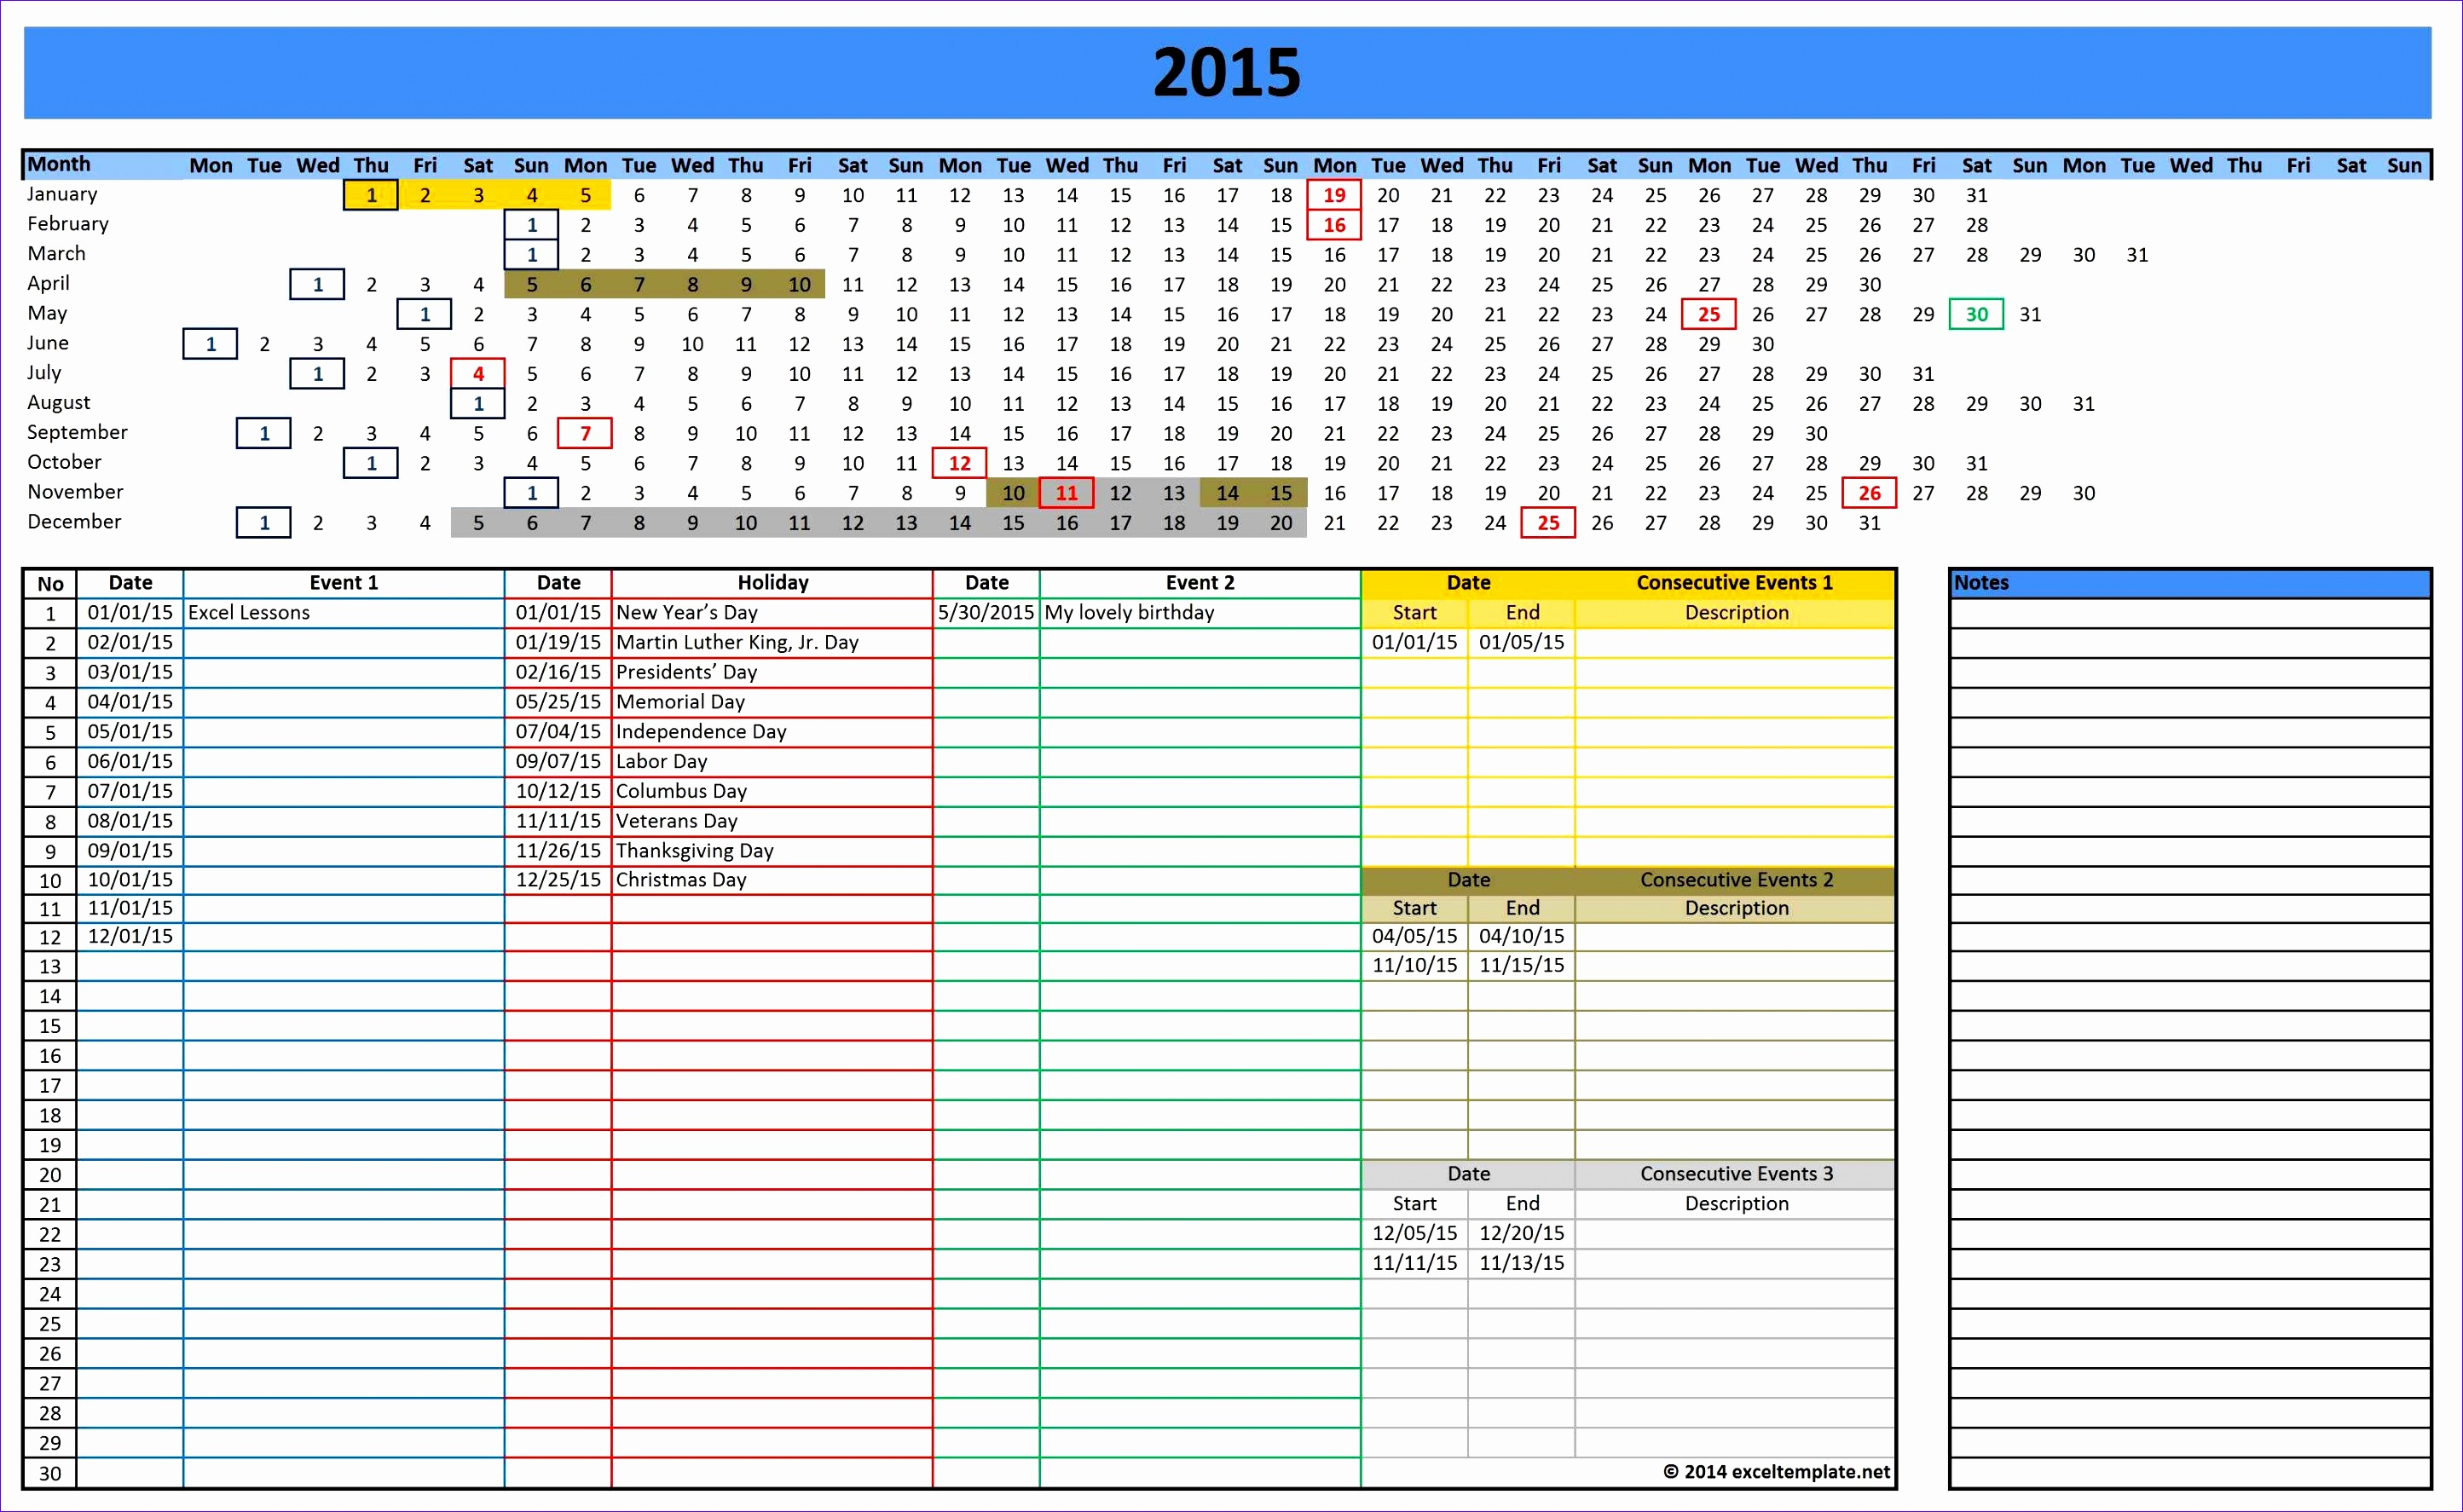 Excel Diary Template Filename | Istudyathes with regard to Excel Quarterly Calendar Template